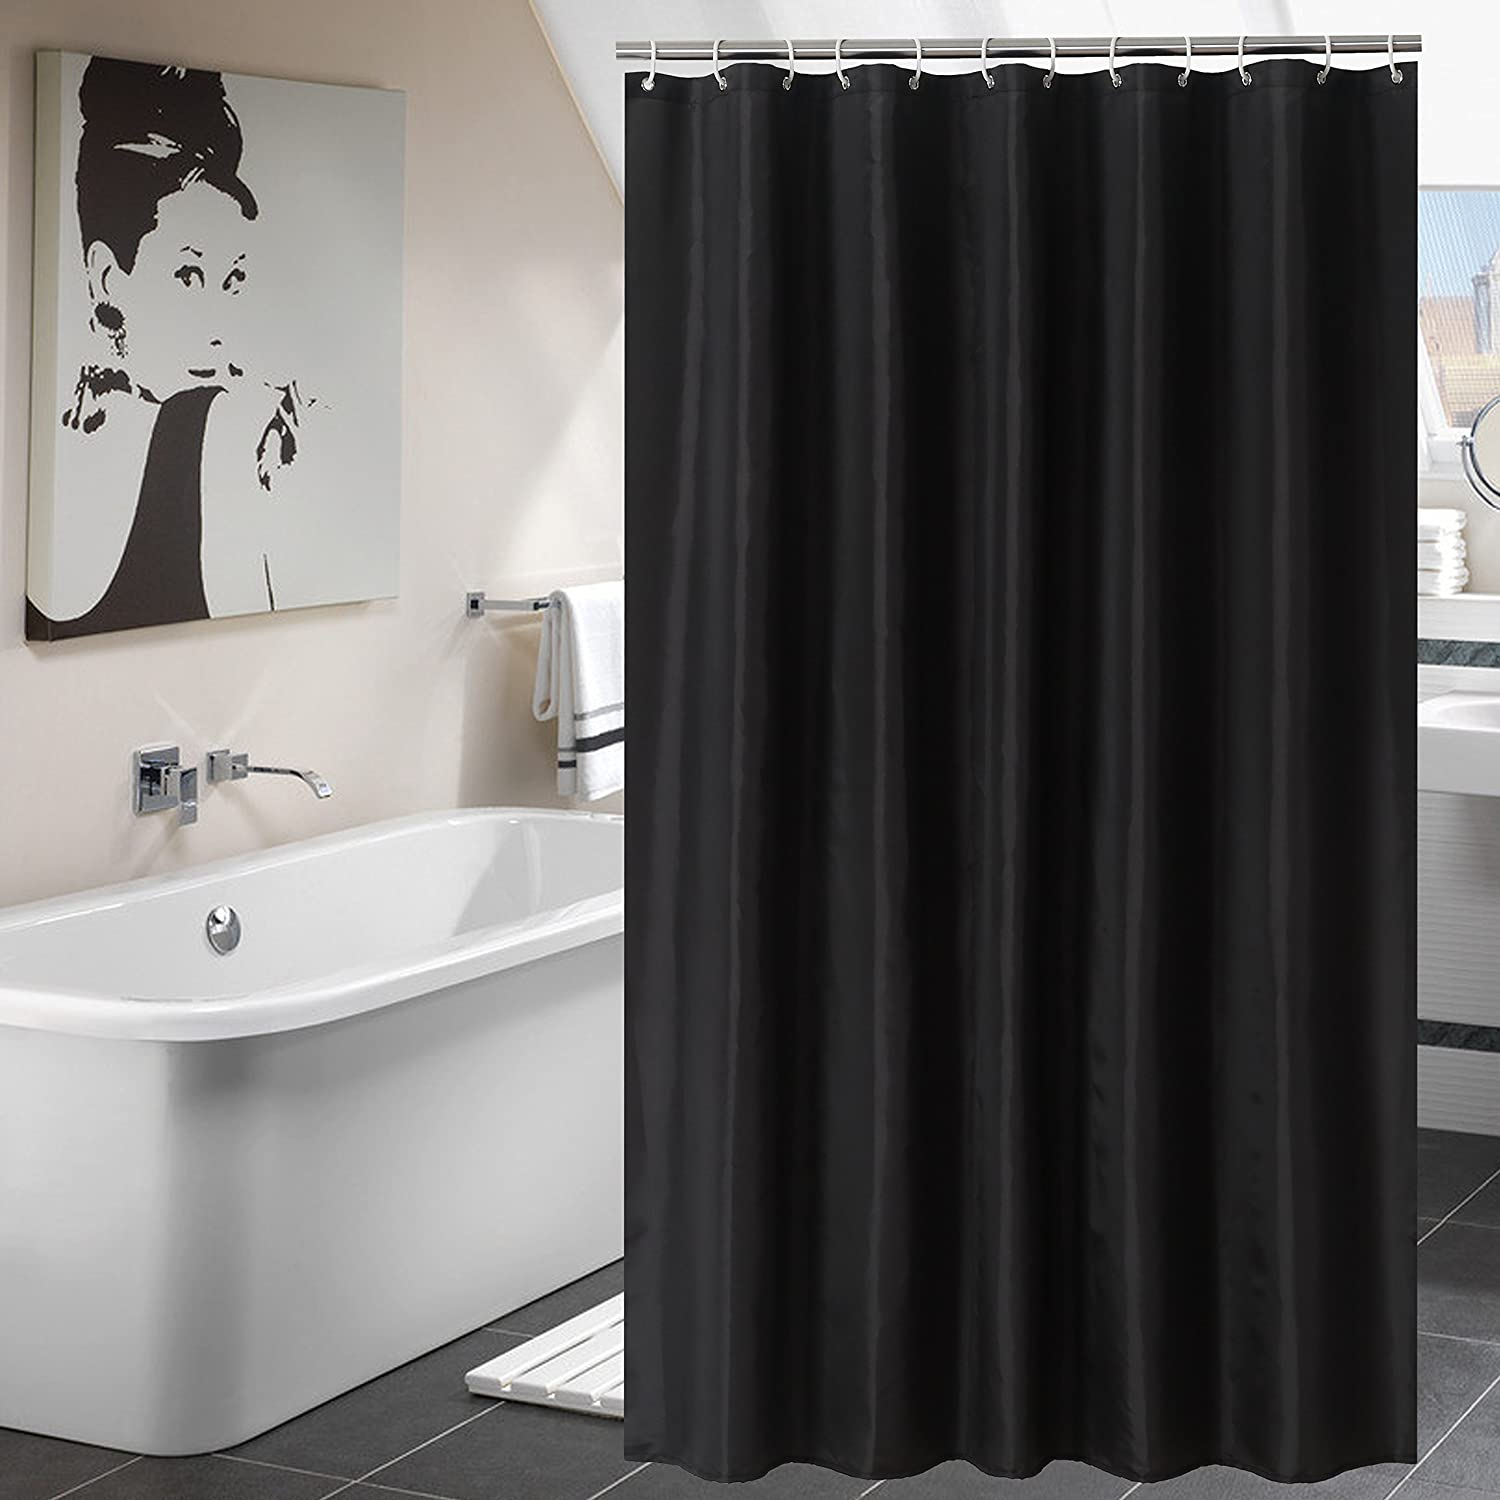 YUUNITY Shower Curtain Mildew Resistant Mold Polyester Fabric Bath With Hooks Bathroom AccessoriesWaterproof Non Toxic Eco Friendly